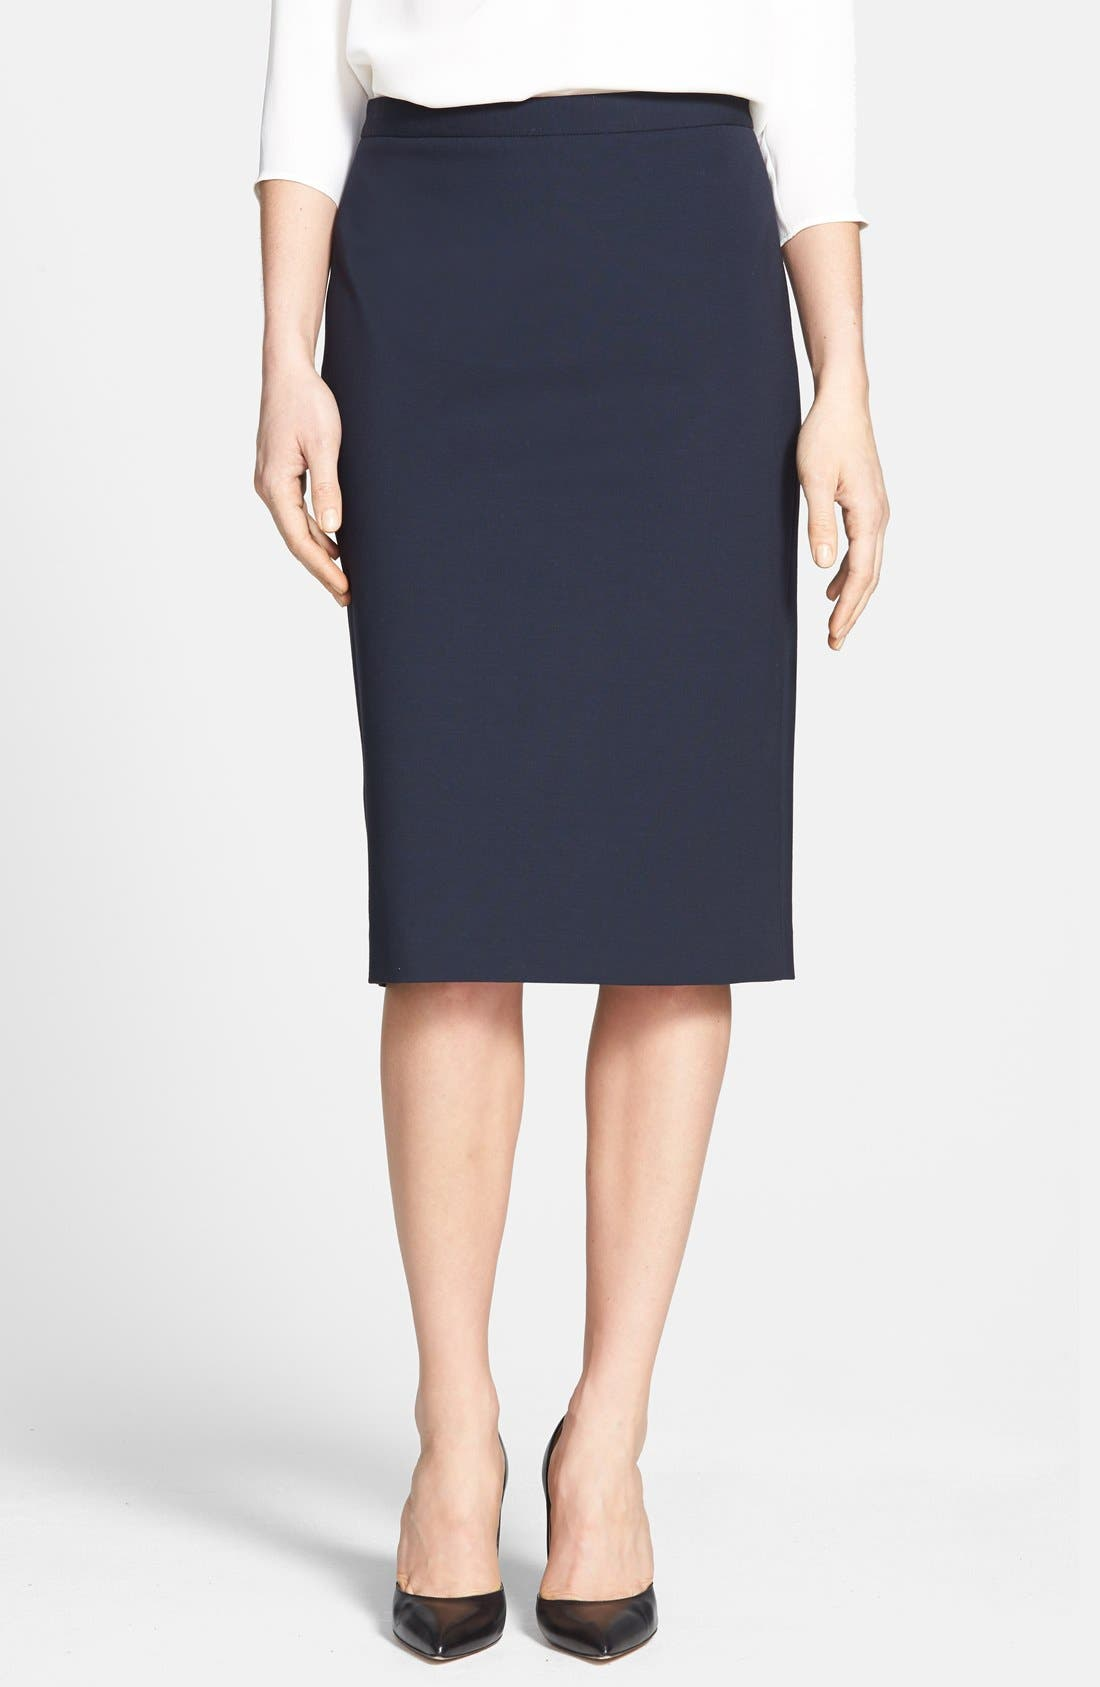 Alternate Image 1 Selected - Theory 'Super' Pencil Skirt